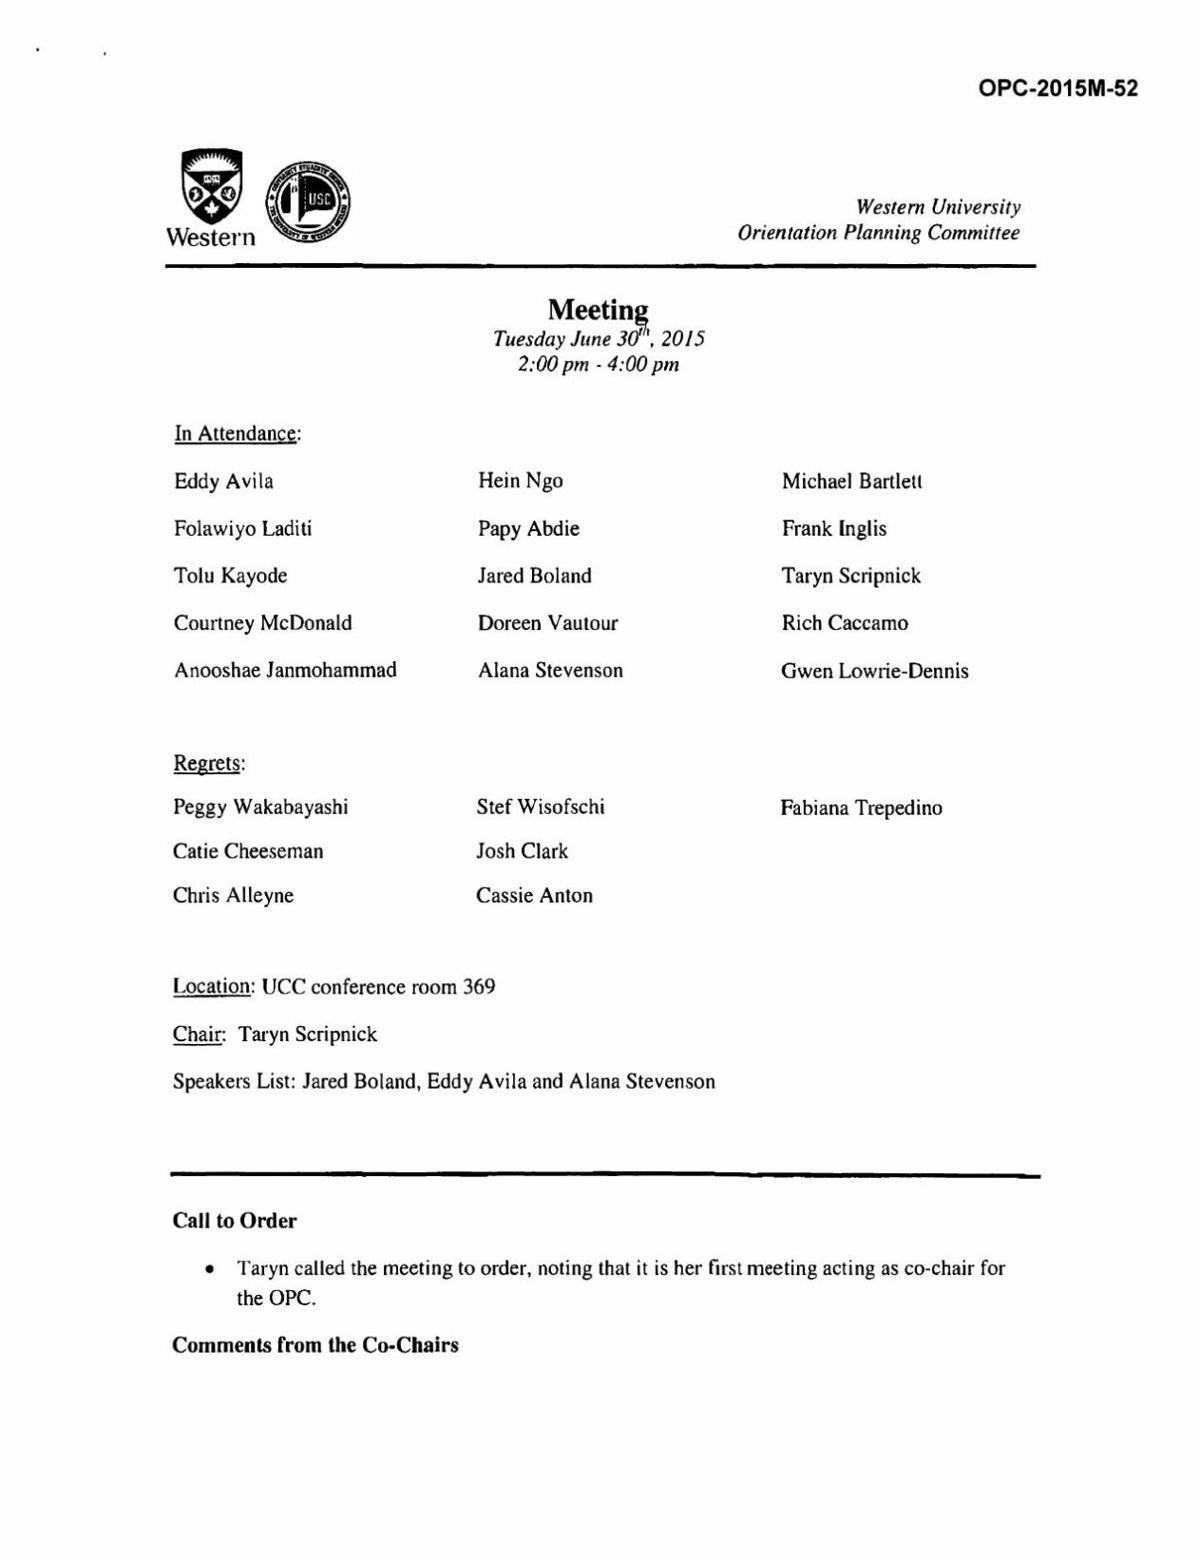 OPC Meeting - June 30, 2015.pdf